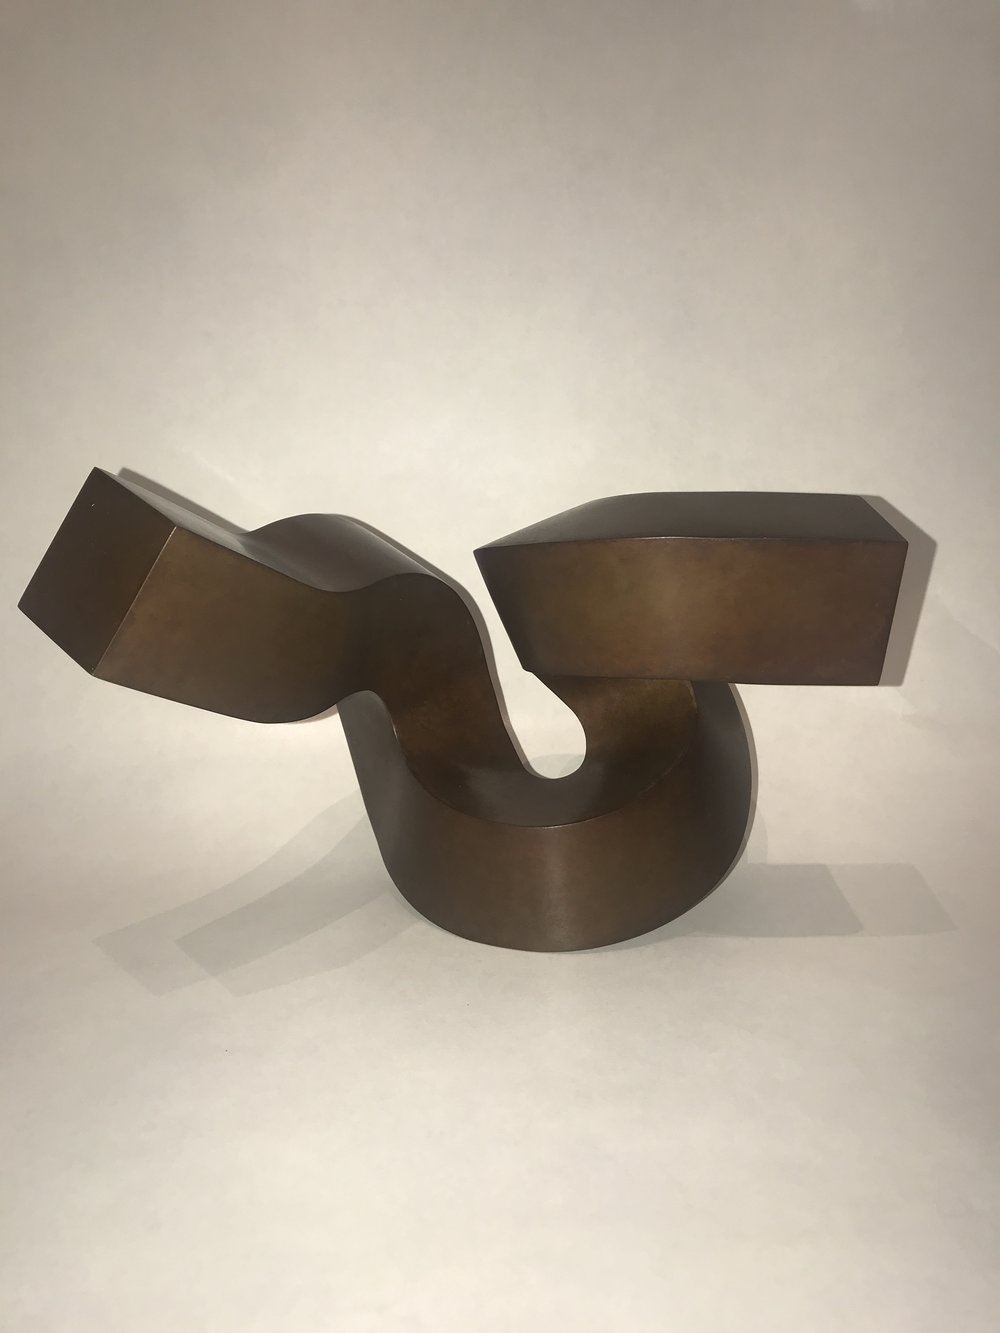 Wingspread, bronze, 6.7 x 11 x 6.7 in